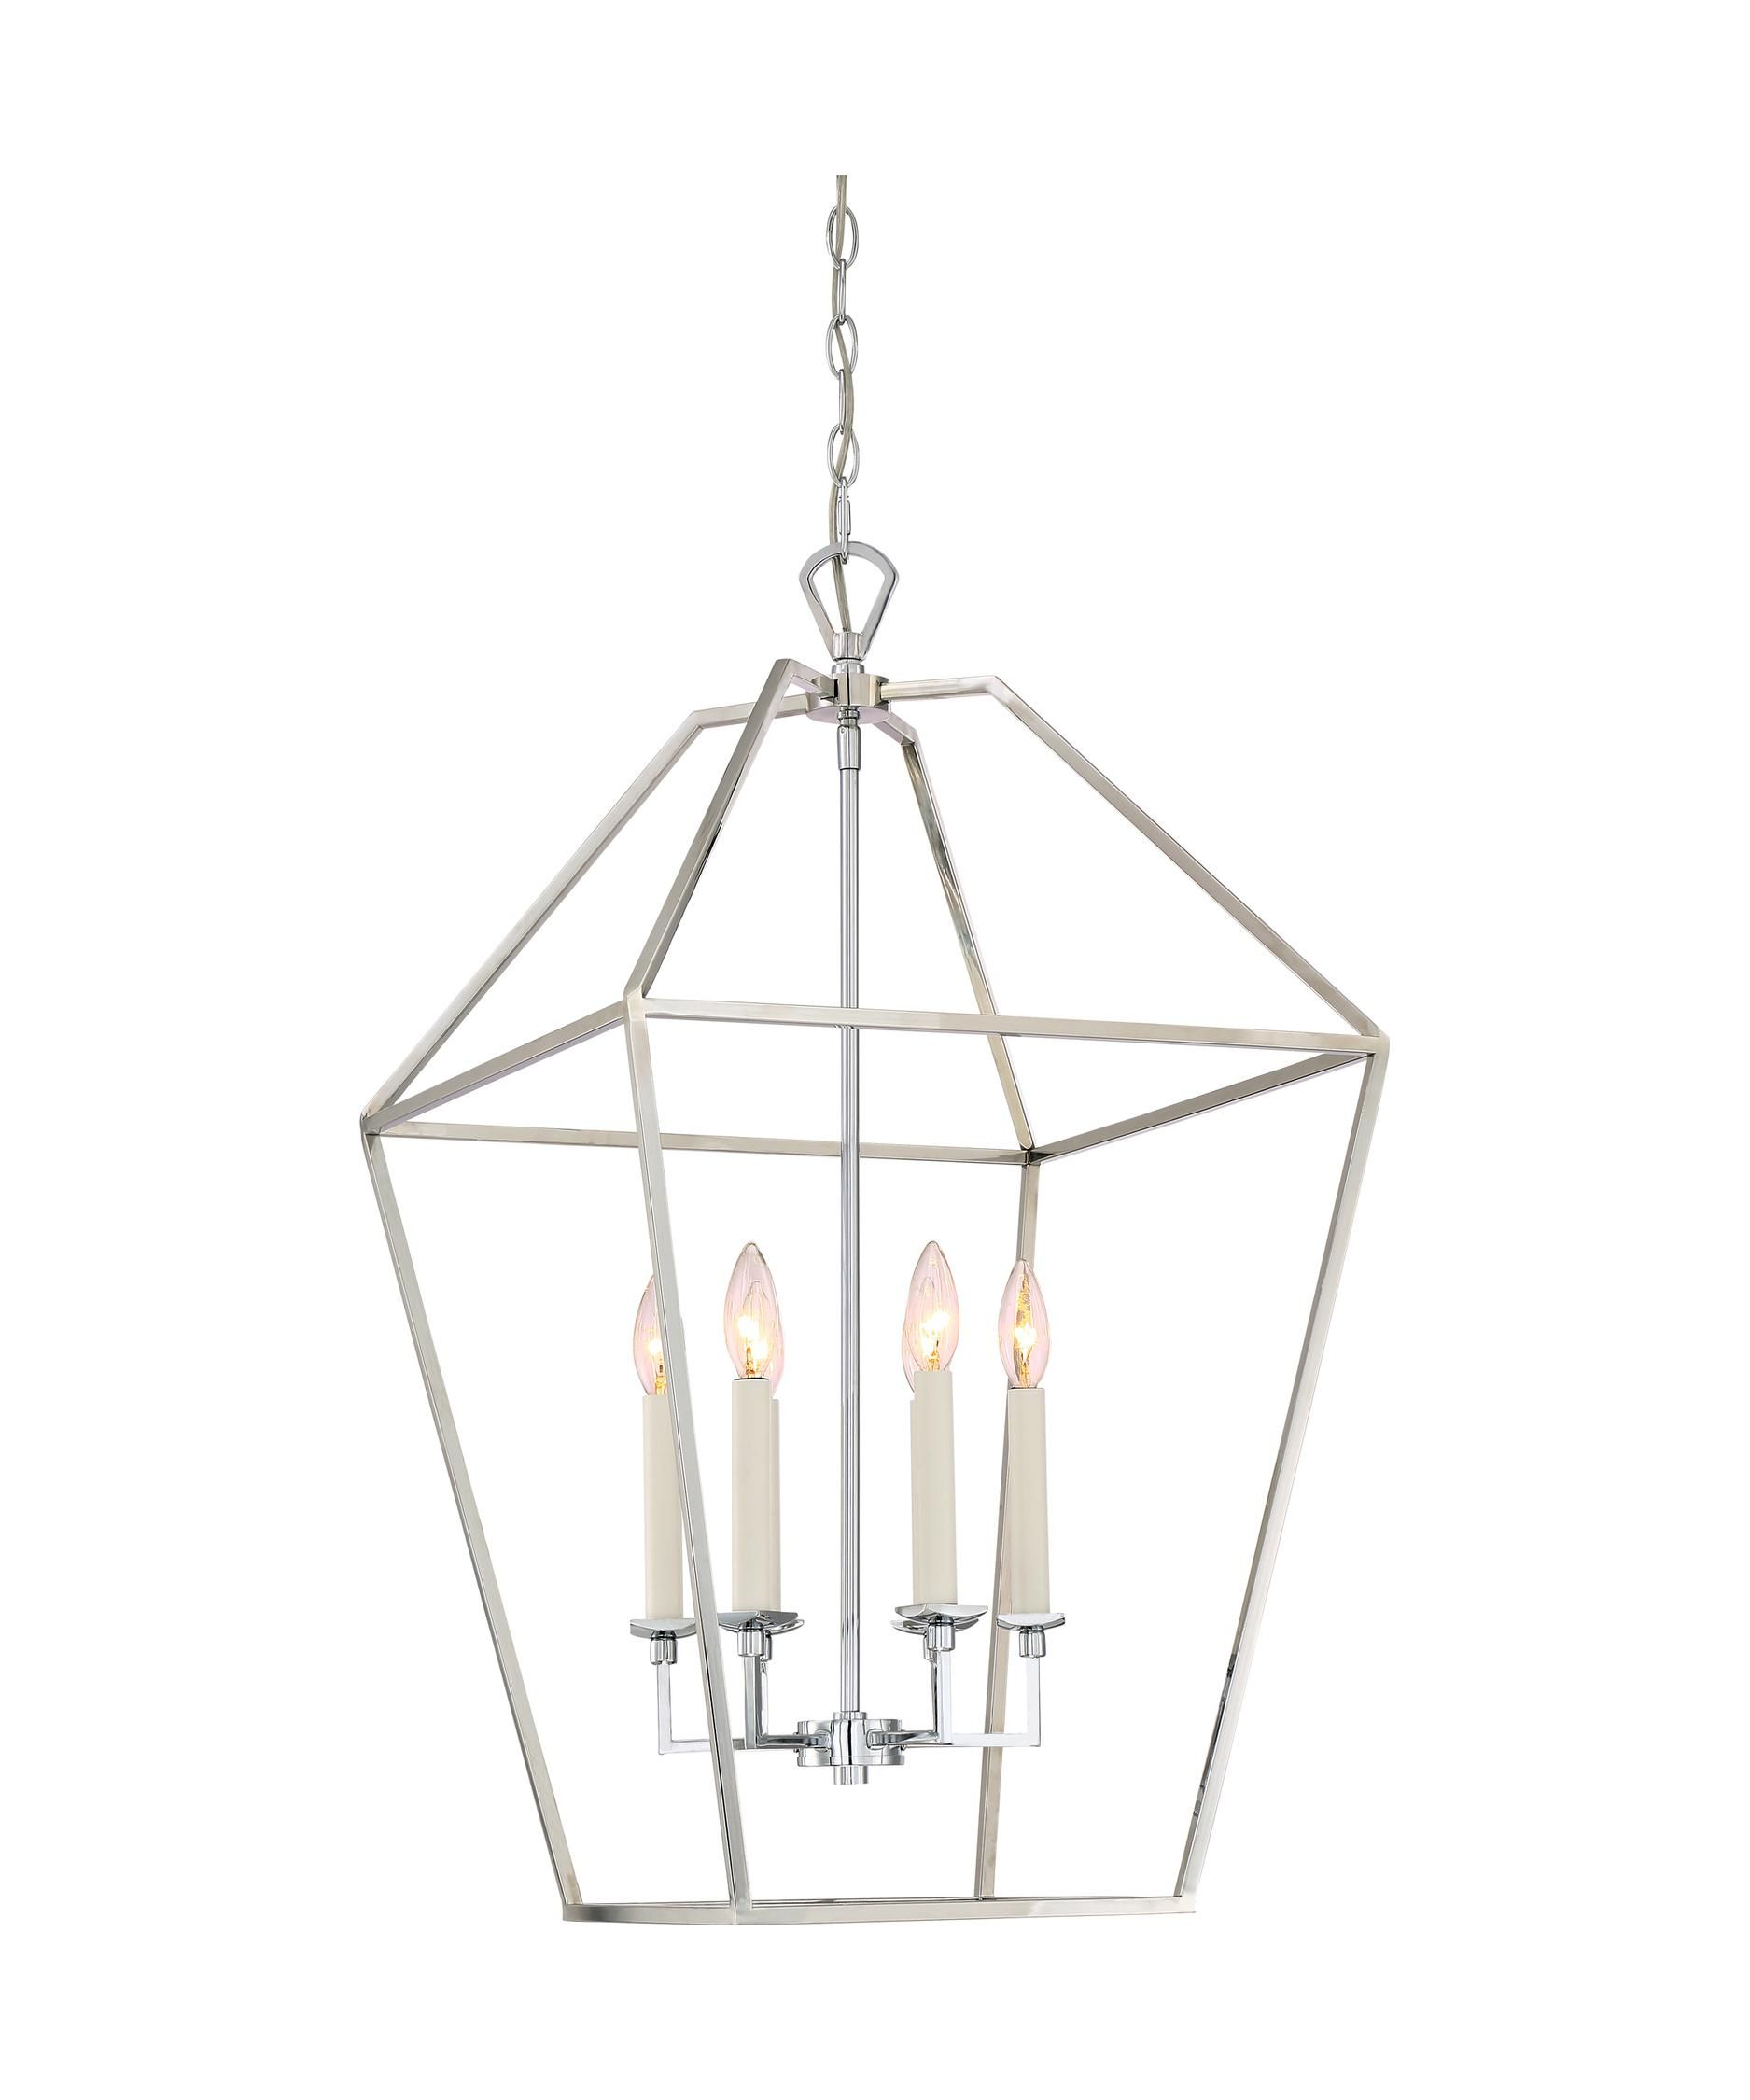 Quoizel avy5206 aviary 20 inch large pendant products ceiling quoizel avy5206 aviary 20 inch large pendant mozeypictures Image collections